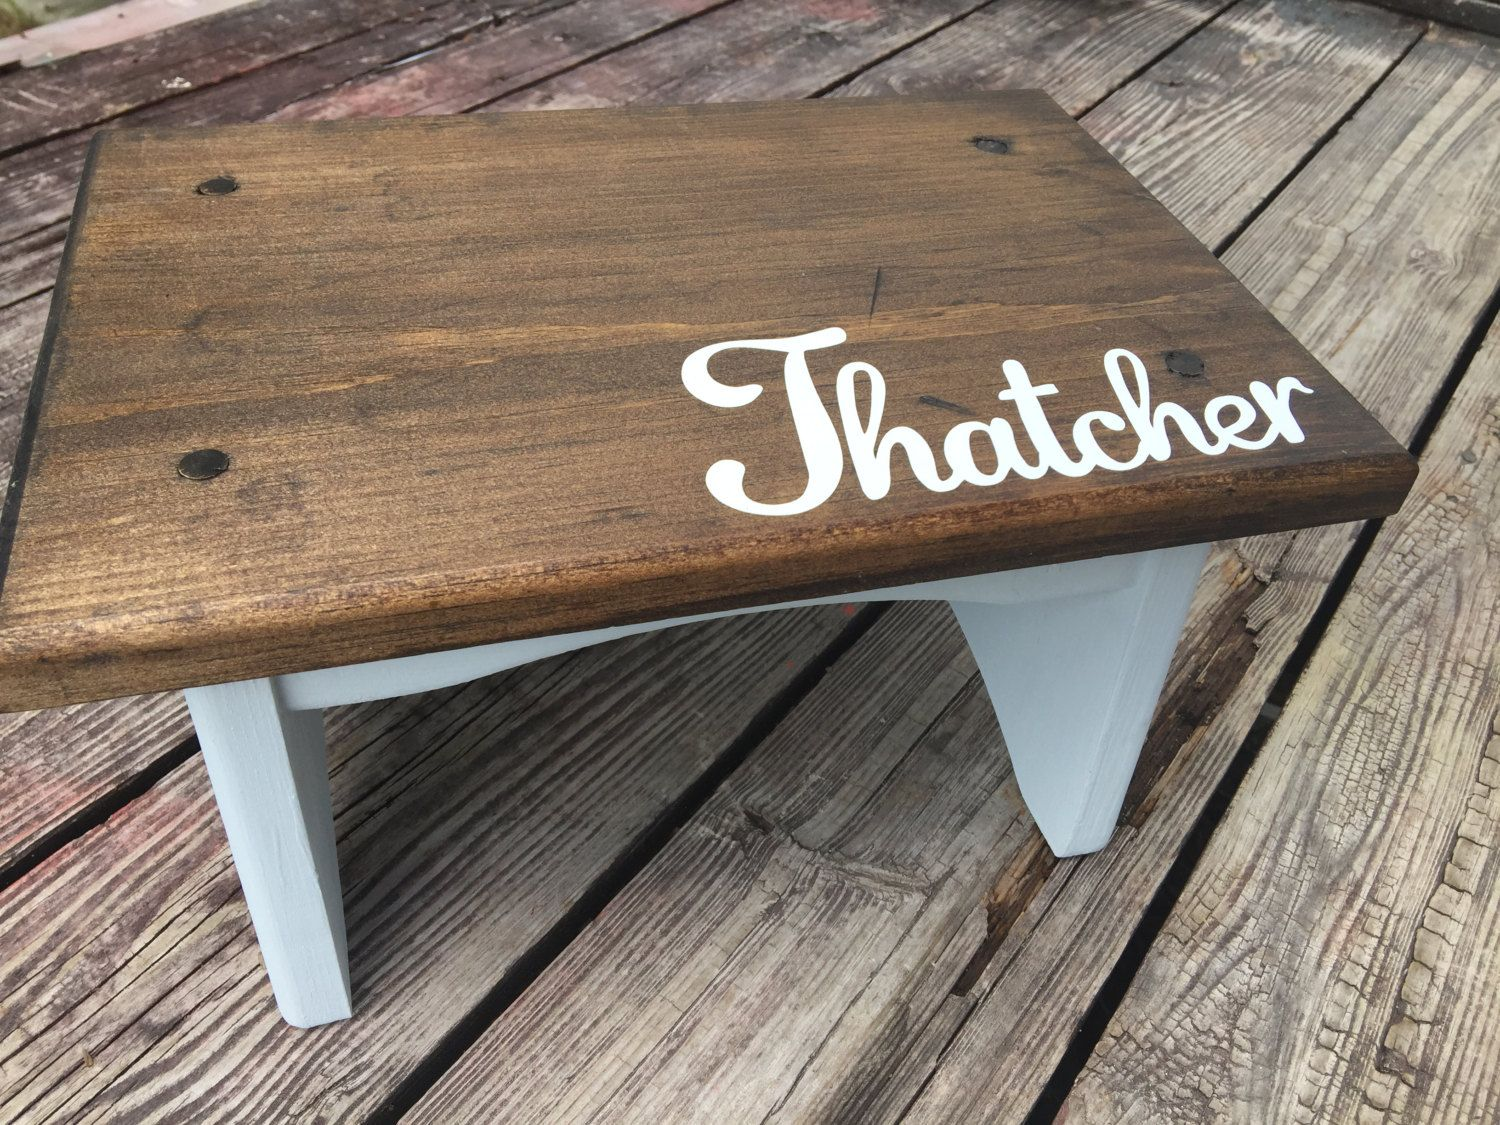 Groovy Wood Wooden Childs Step Stool With Name Personalized Caraccident5 Cool Chair Designs And Ideas Caraccident5Info